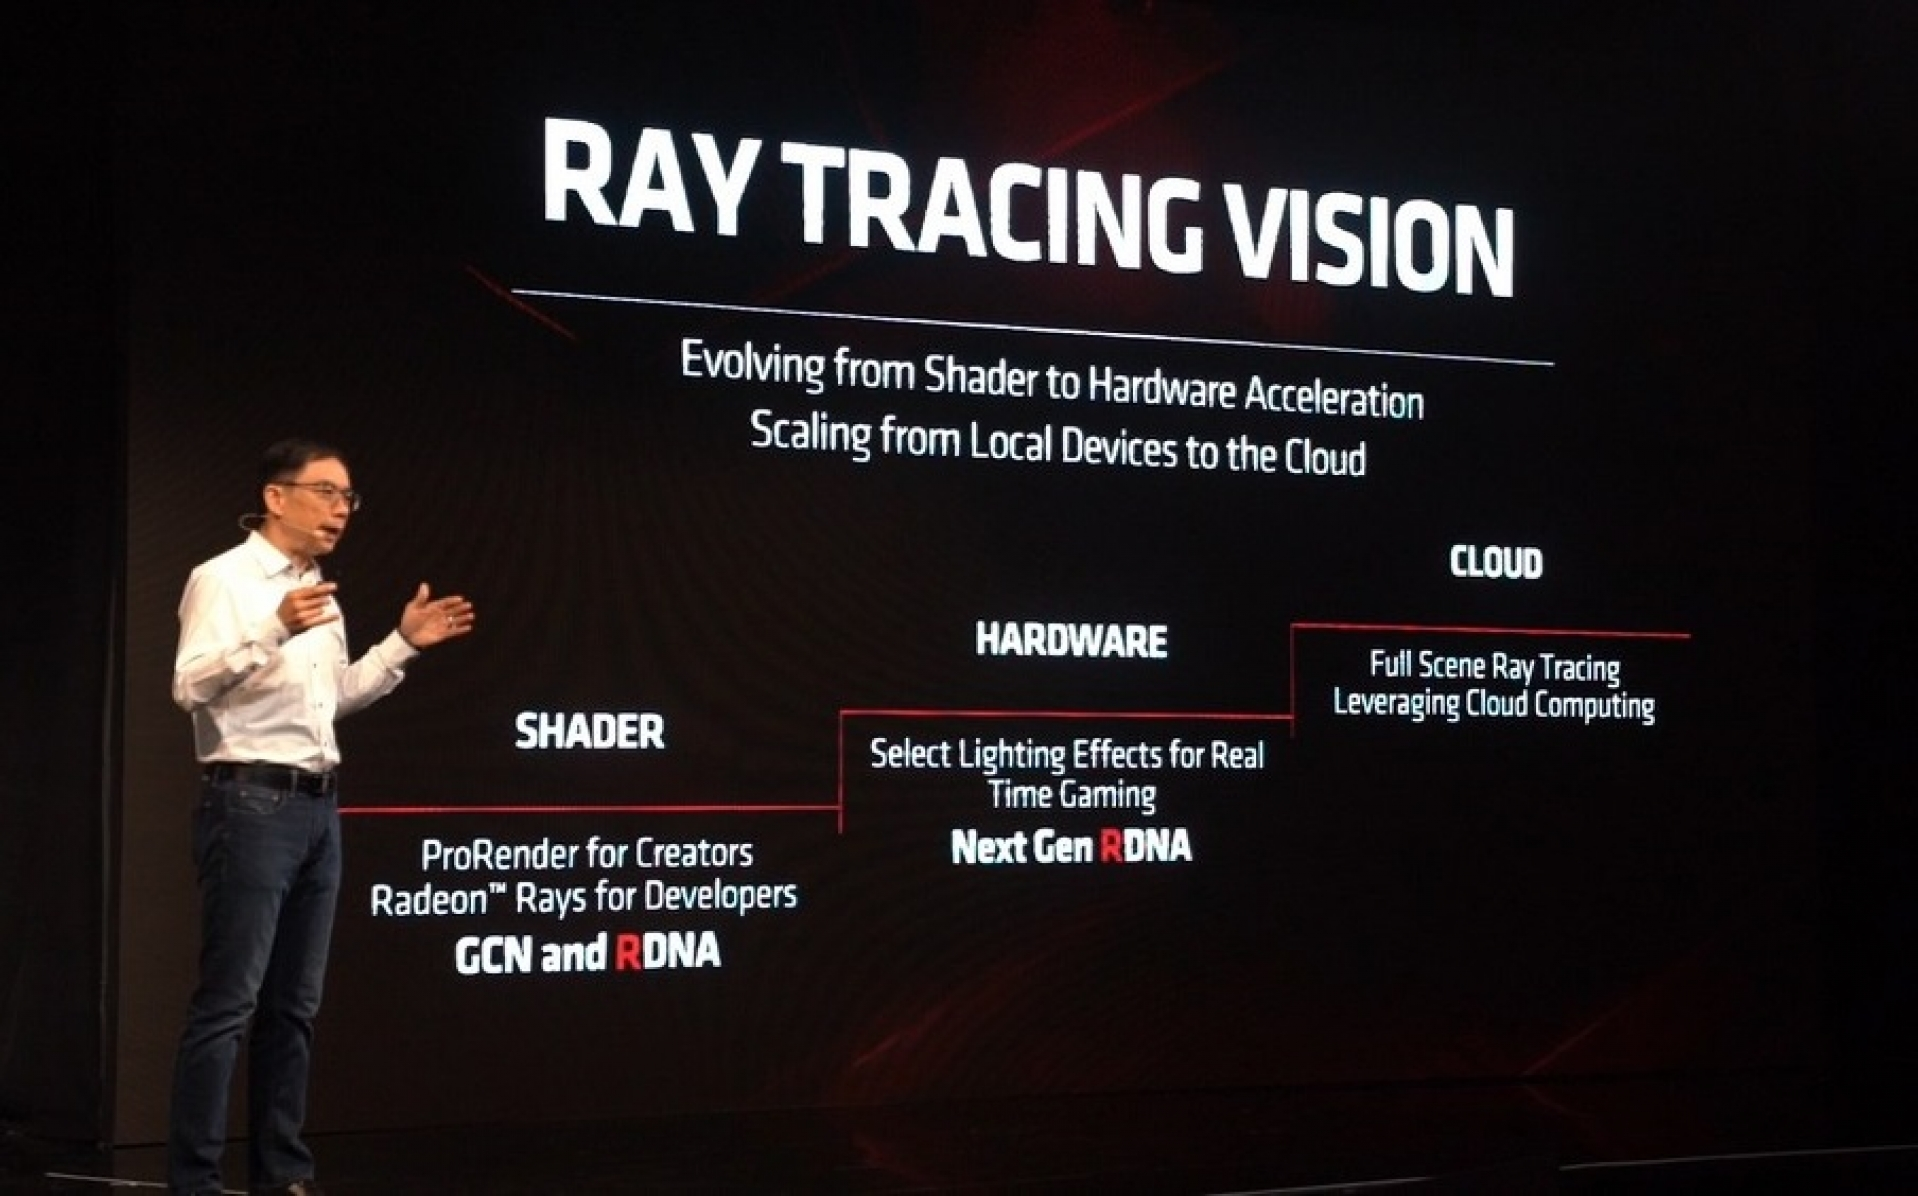 Amd Says Nvidia Fell For Its Pricing Trap Ars Technica Openforum